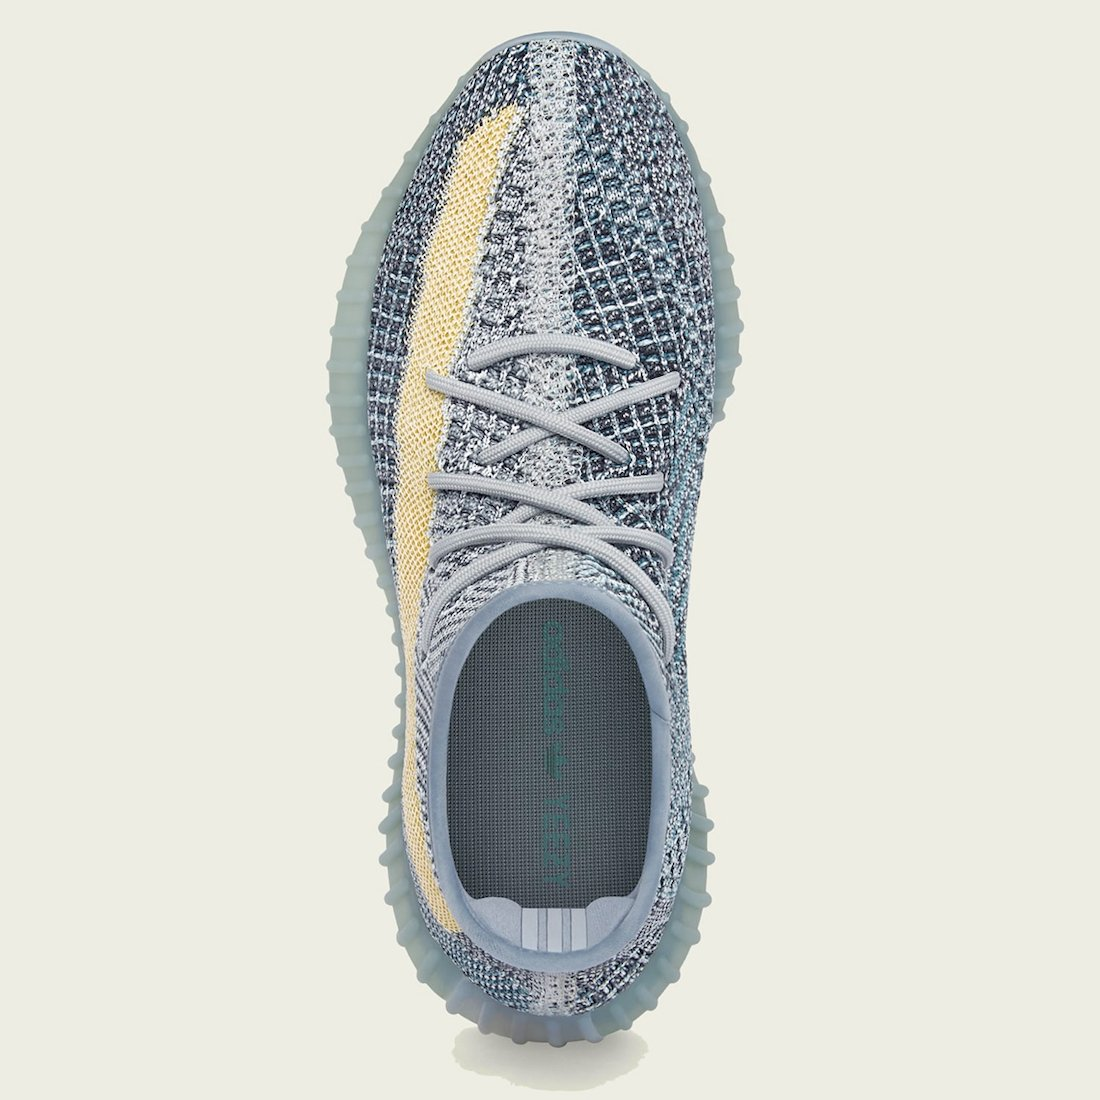 adidas Yeezy Boost 350 V2 Ash Blue GY7657 Release Date